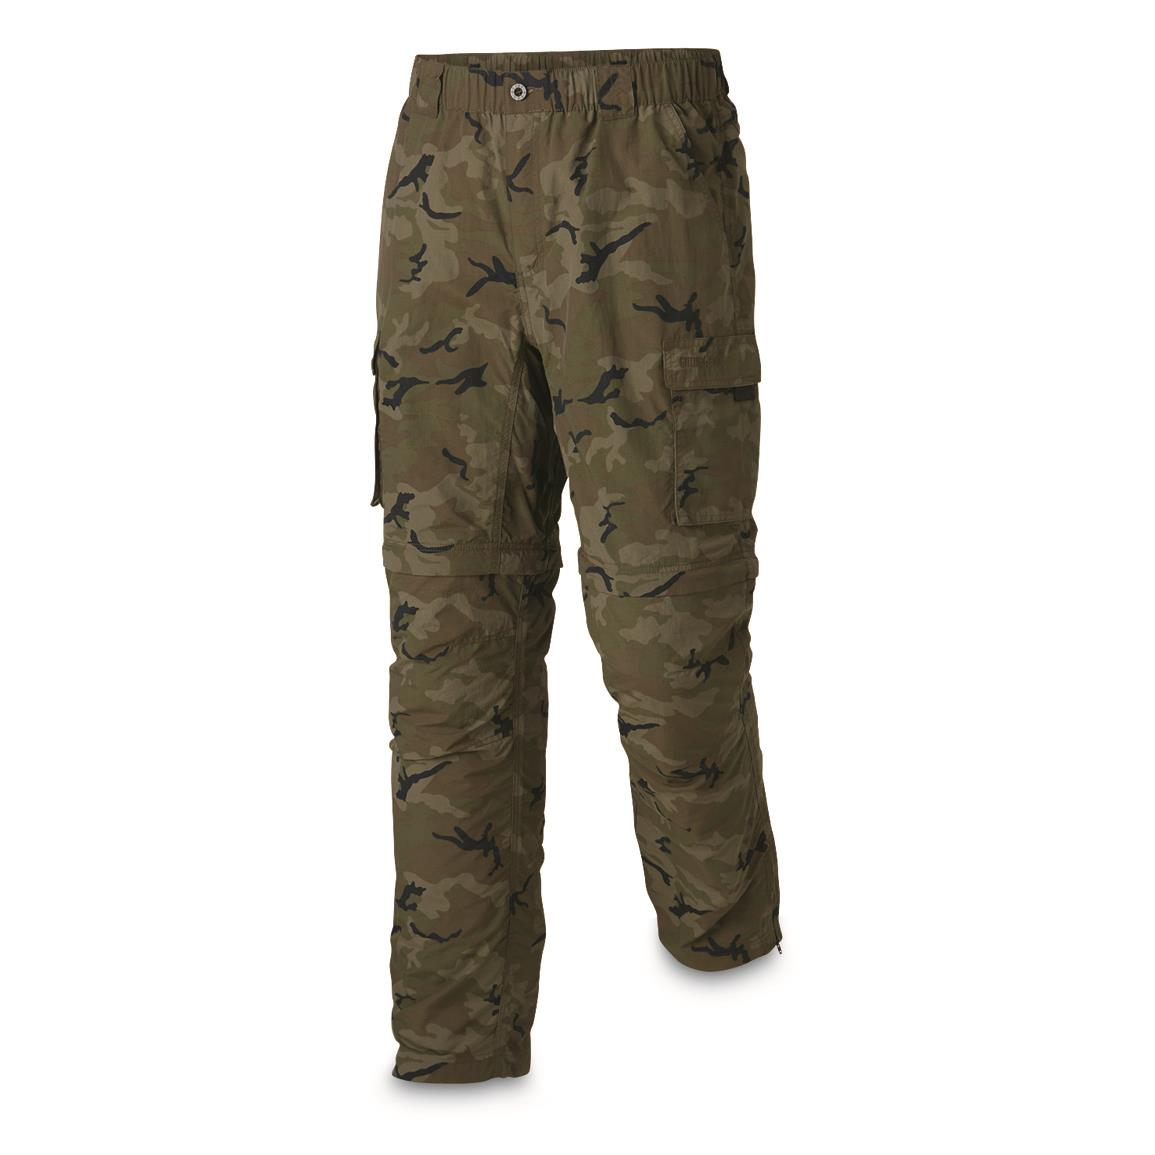 Guide Gear Men's Zip Off River Pants, Camo